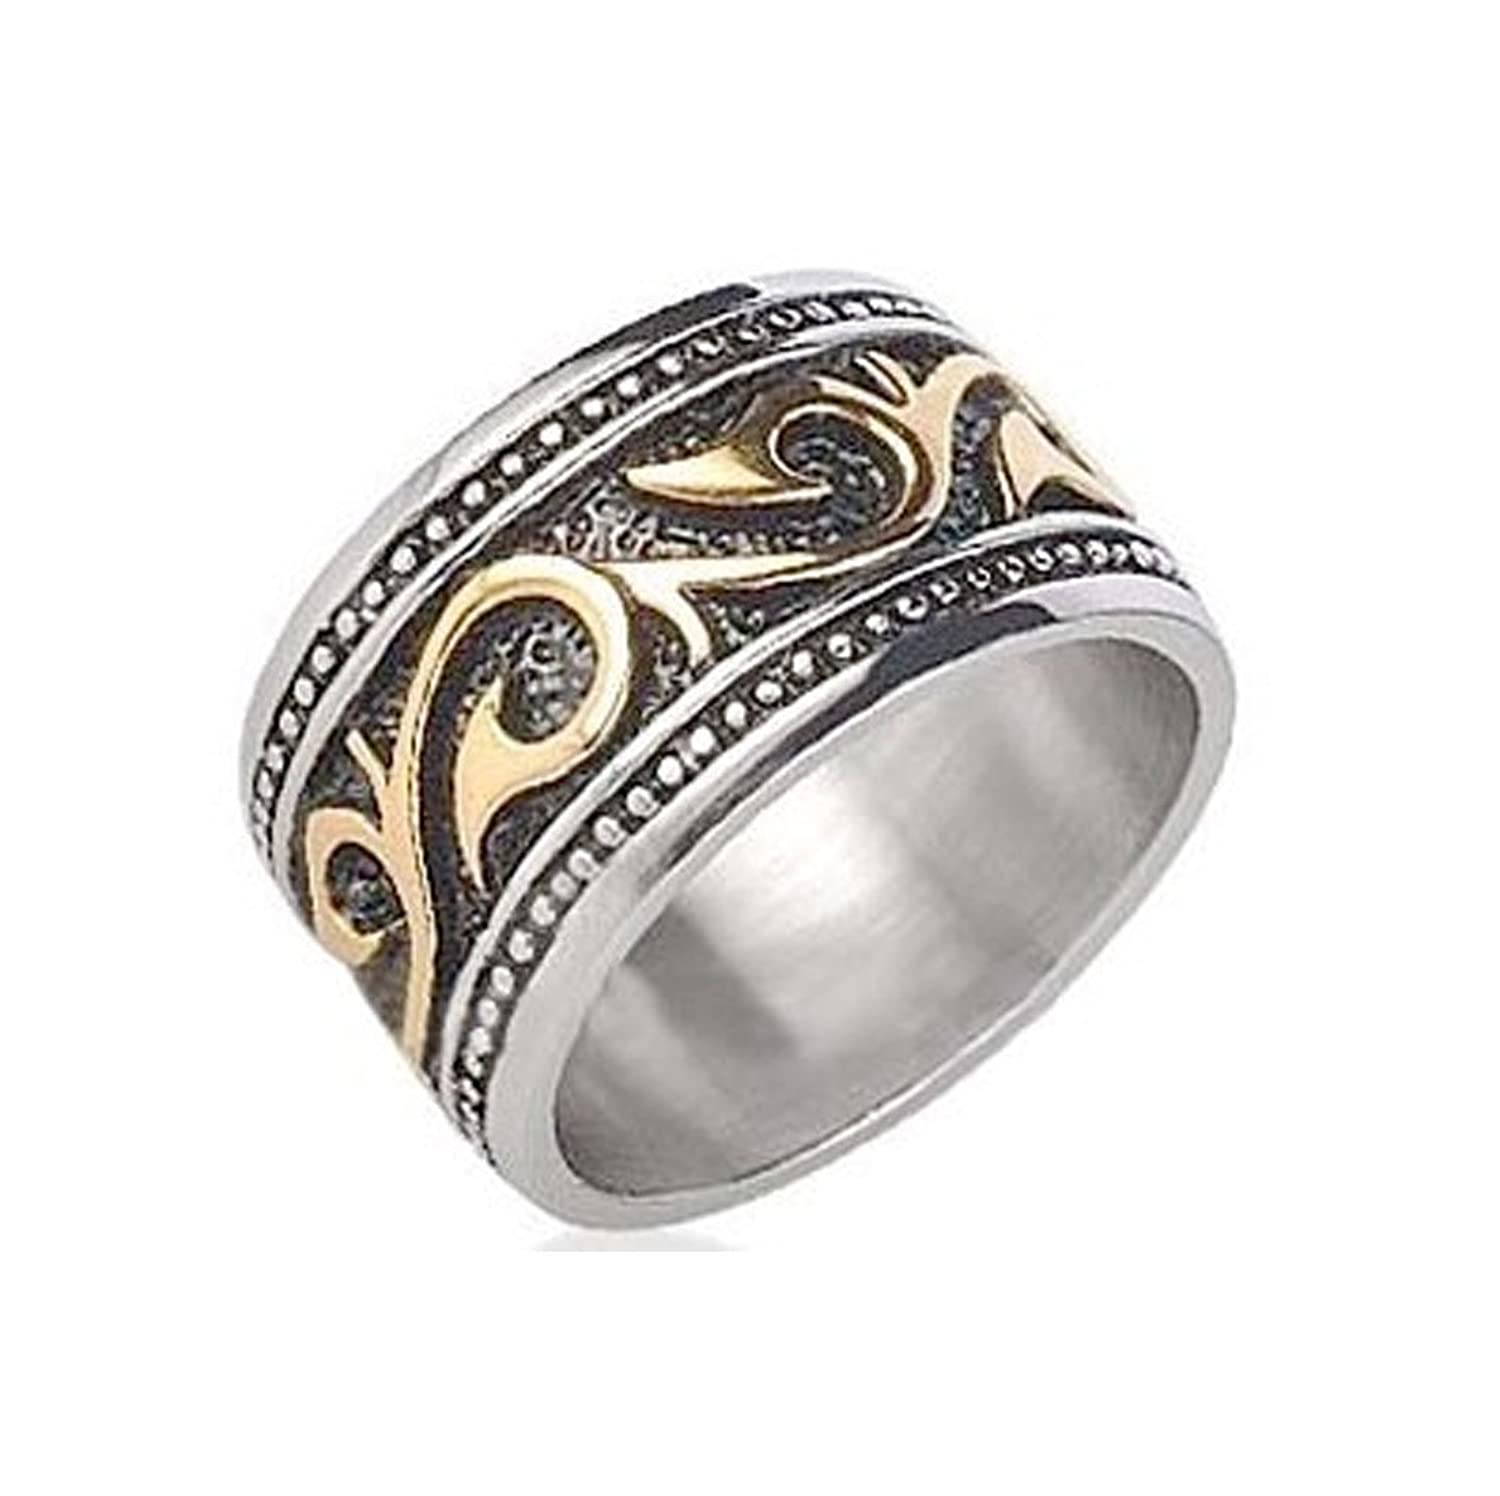 rings golden store buy amazon ring jewellery india prices jewelscart in online women dp low at gold for